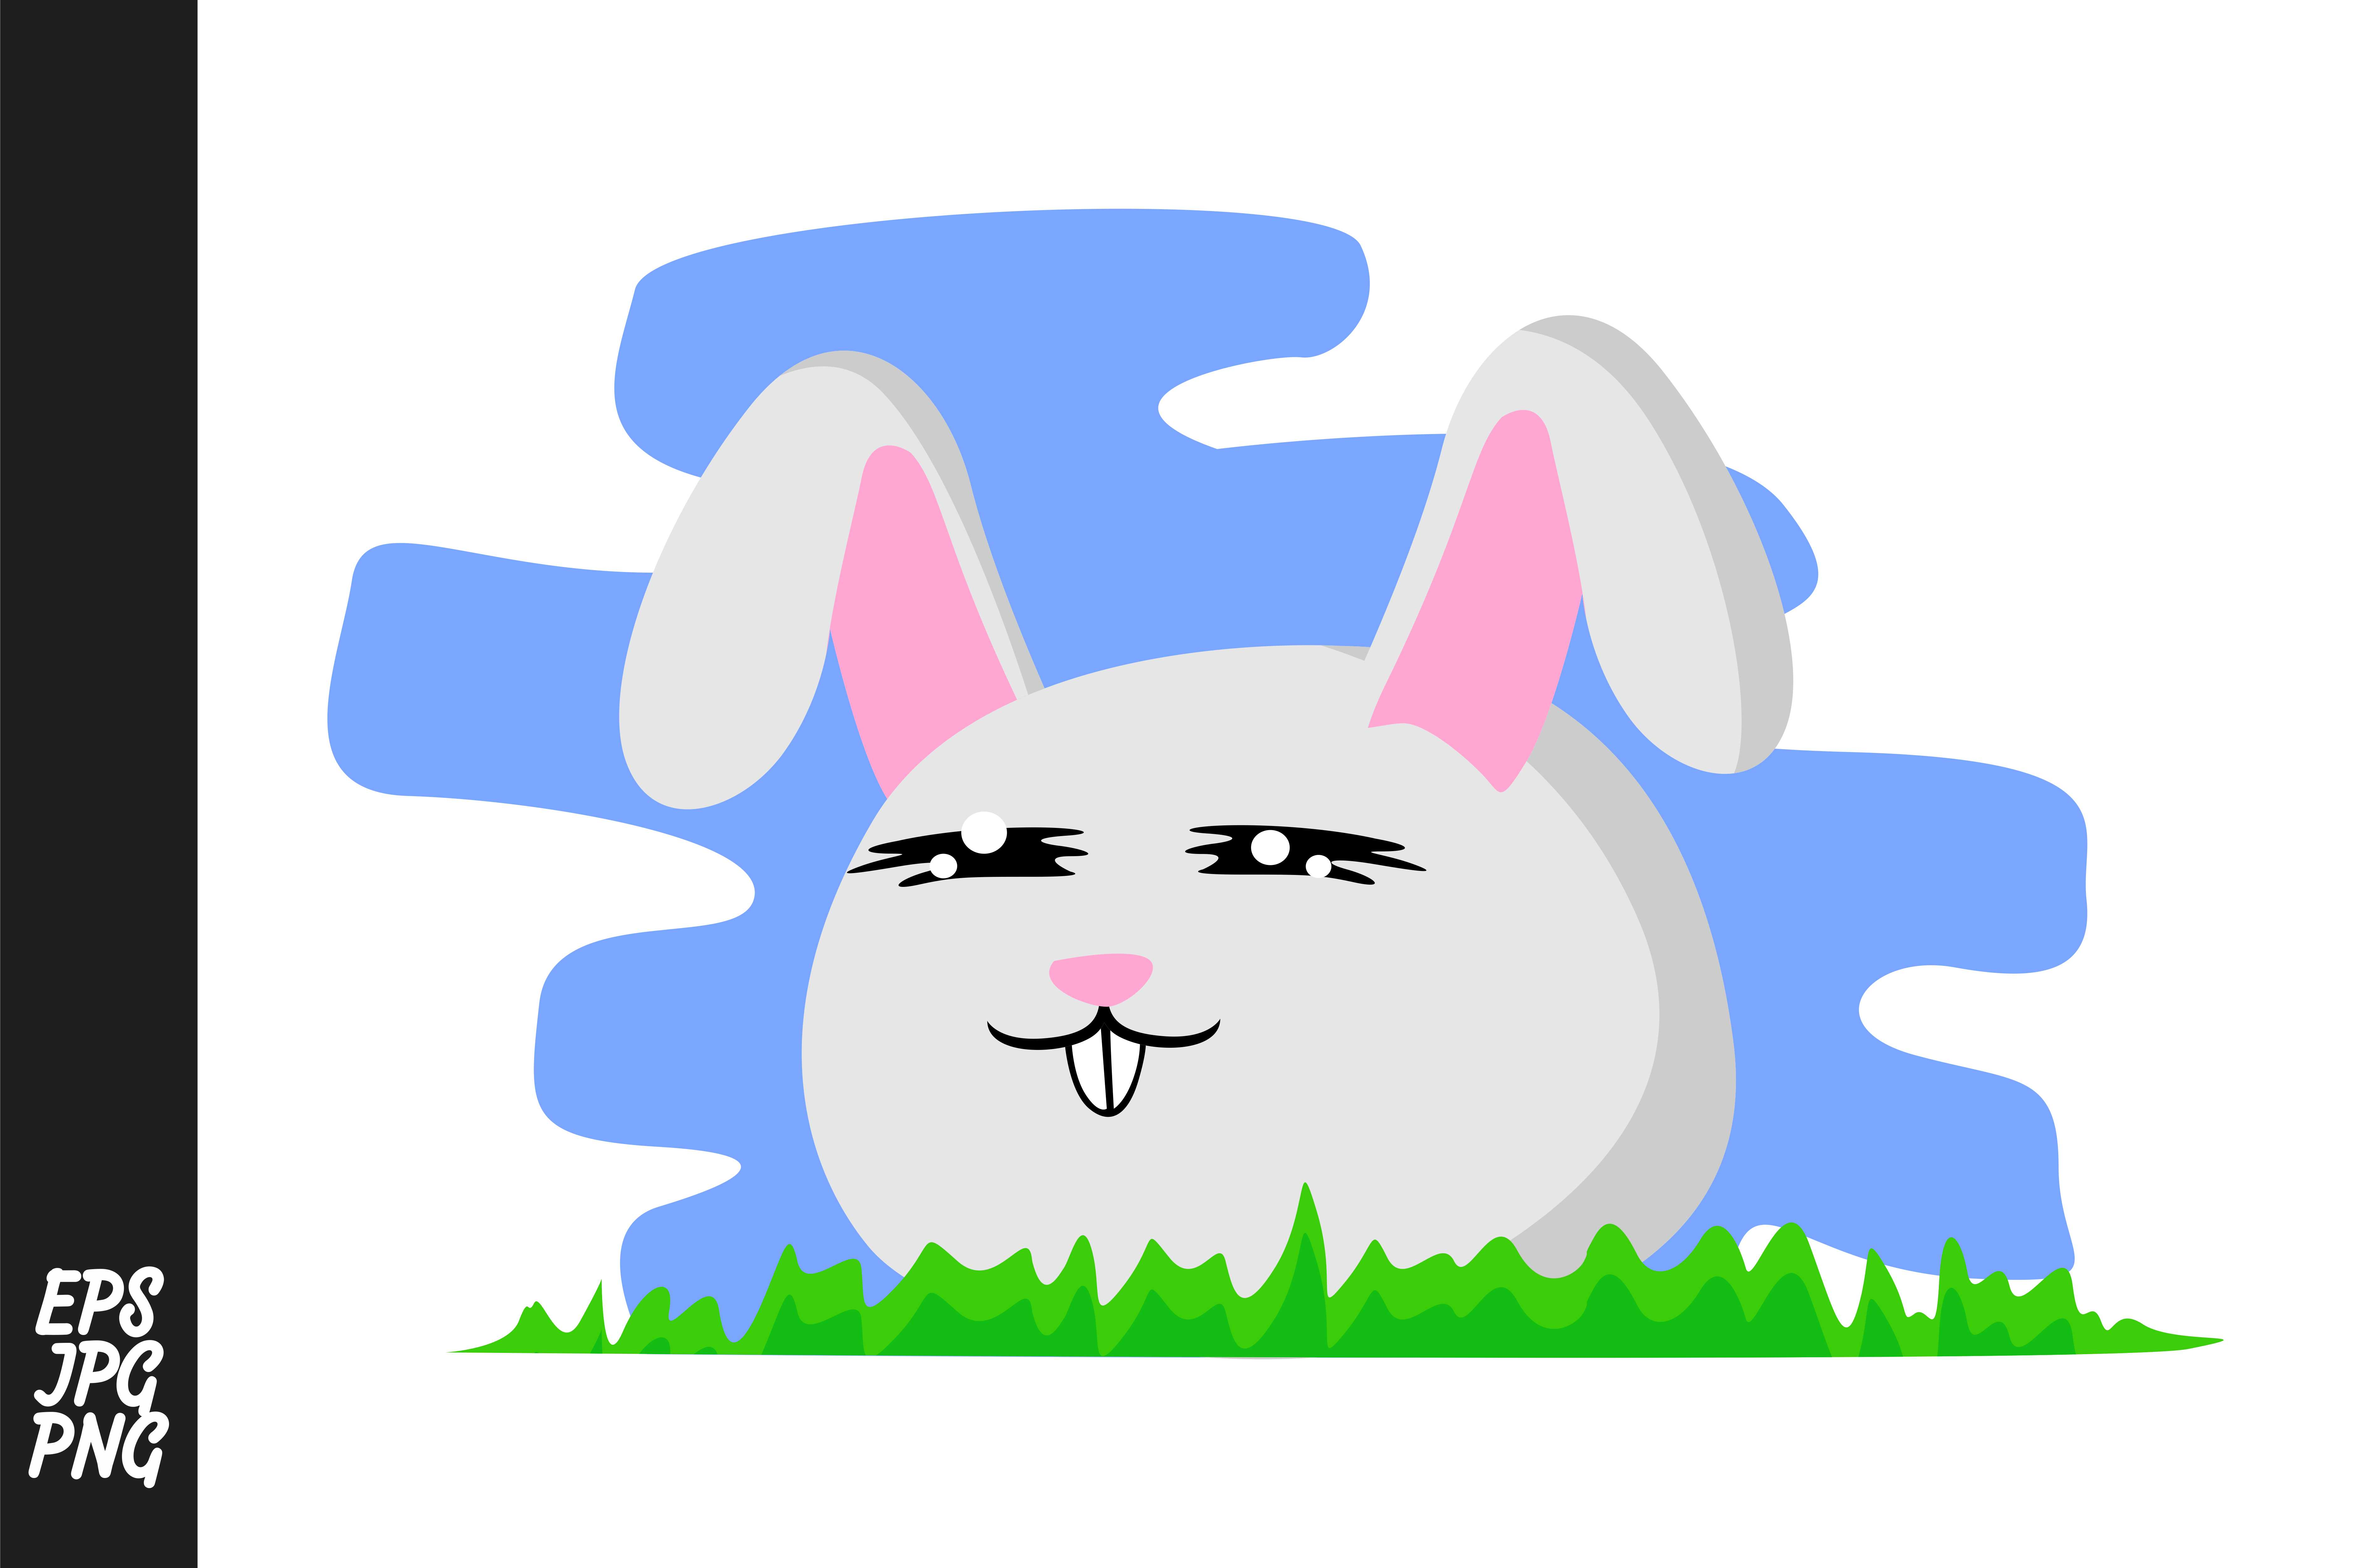 Download Free Cute Animals Rabbit Vector Graphic By Arief Sapta Adjie for Cricut Explore, Silhouette and other cutting machines.